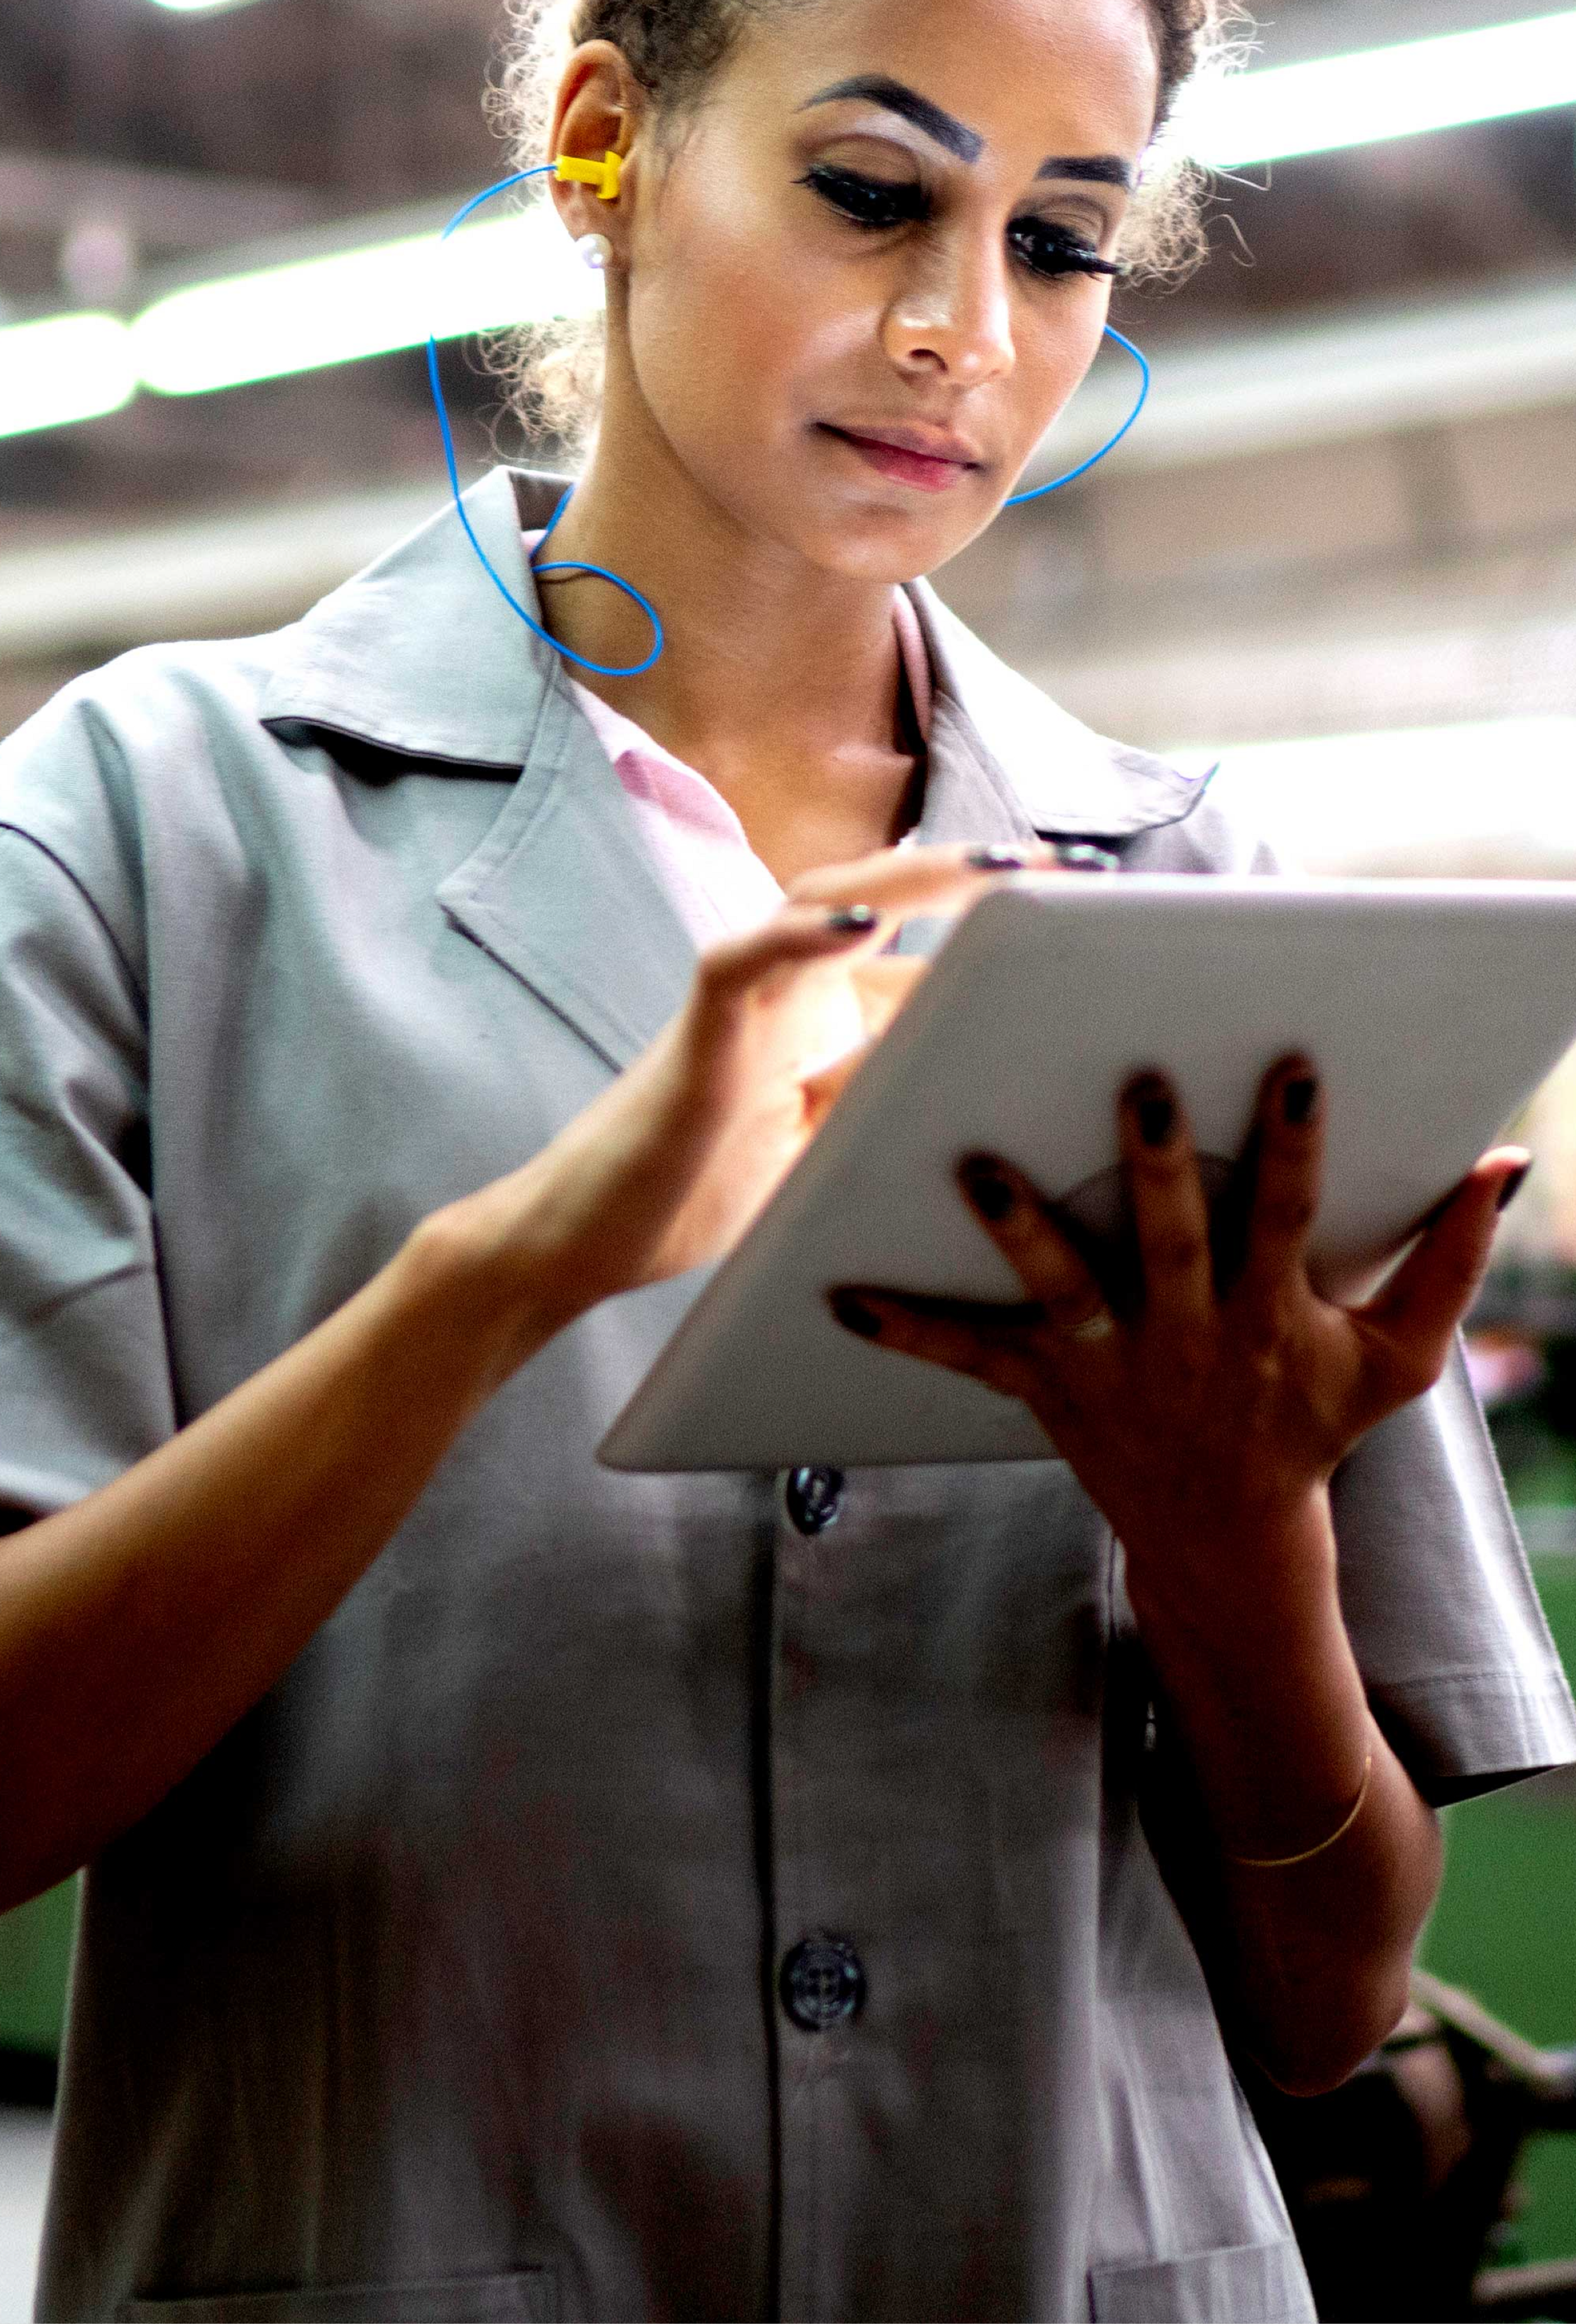 Image of blonde wearing yellow earplugs and  a gray lab coat typing on an ipad